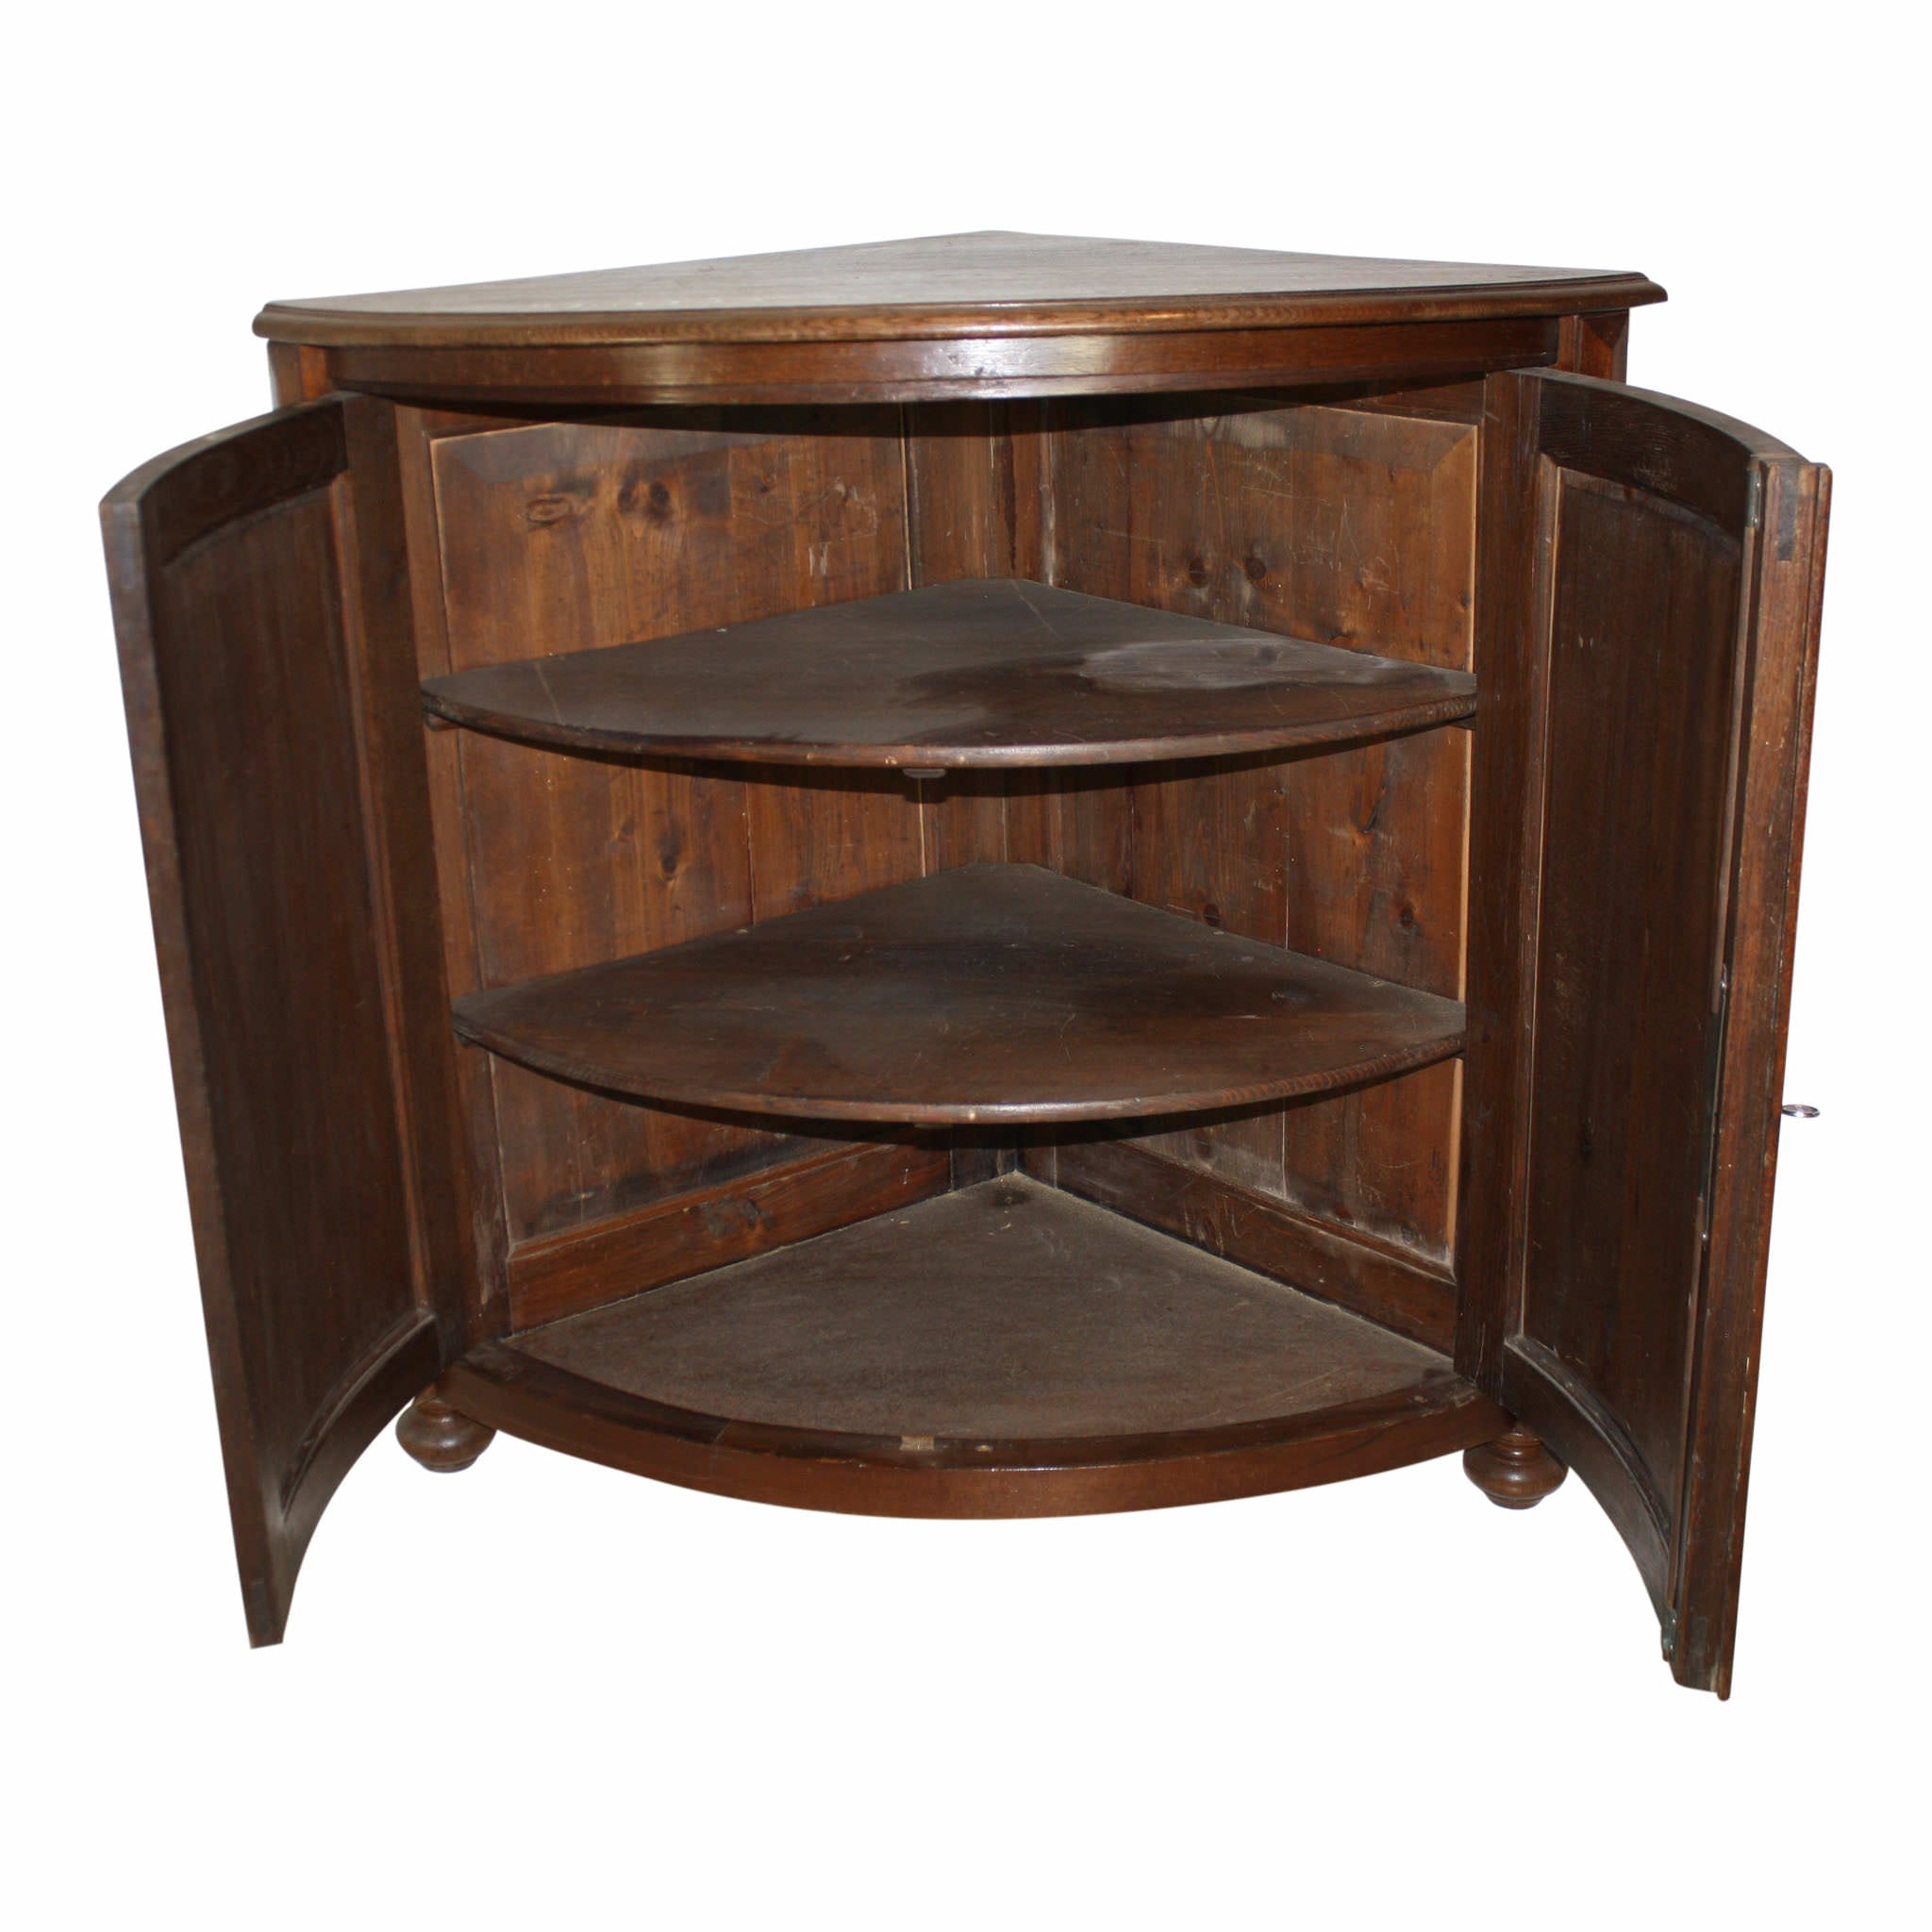 German Bow Front Corner Cabinet